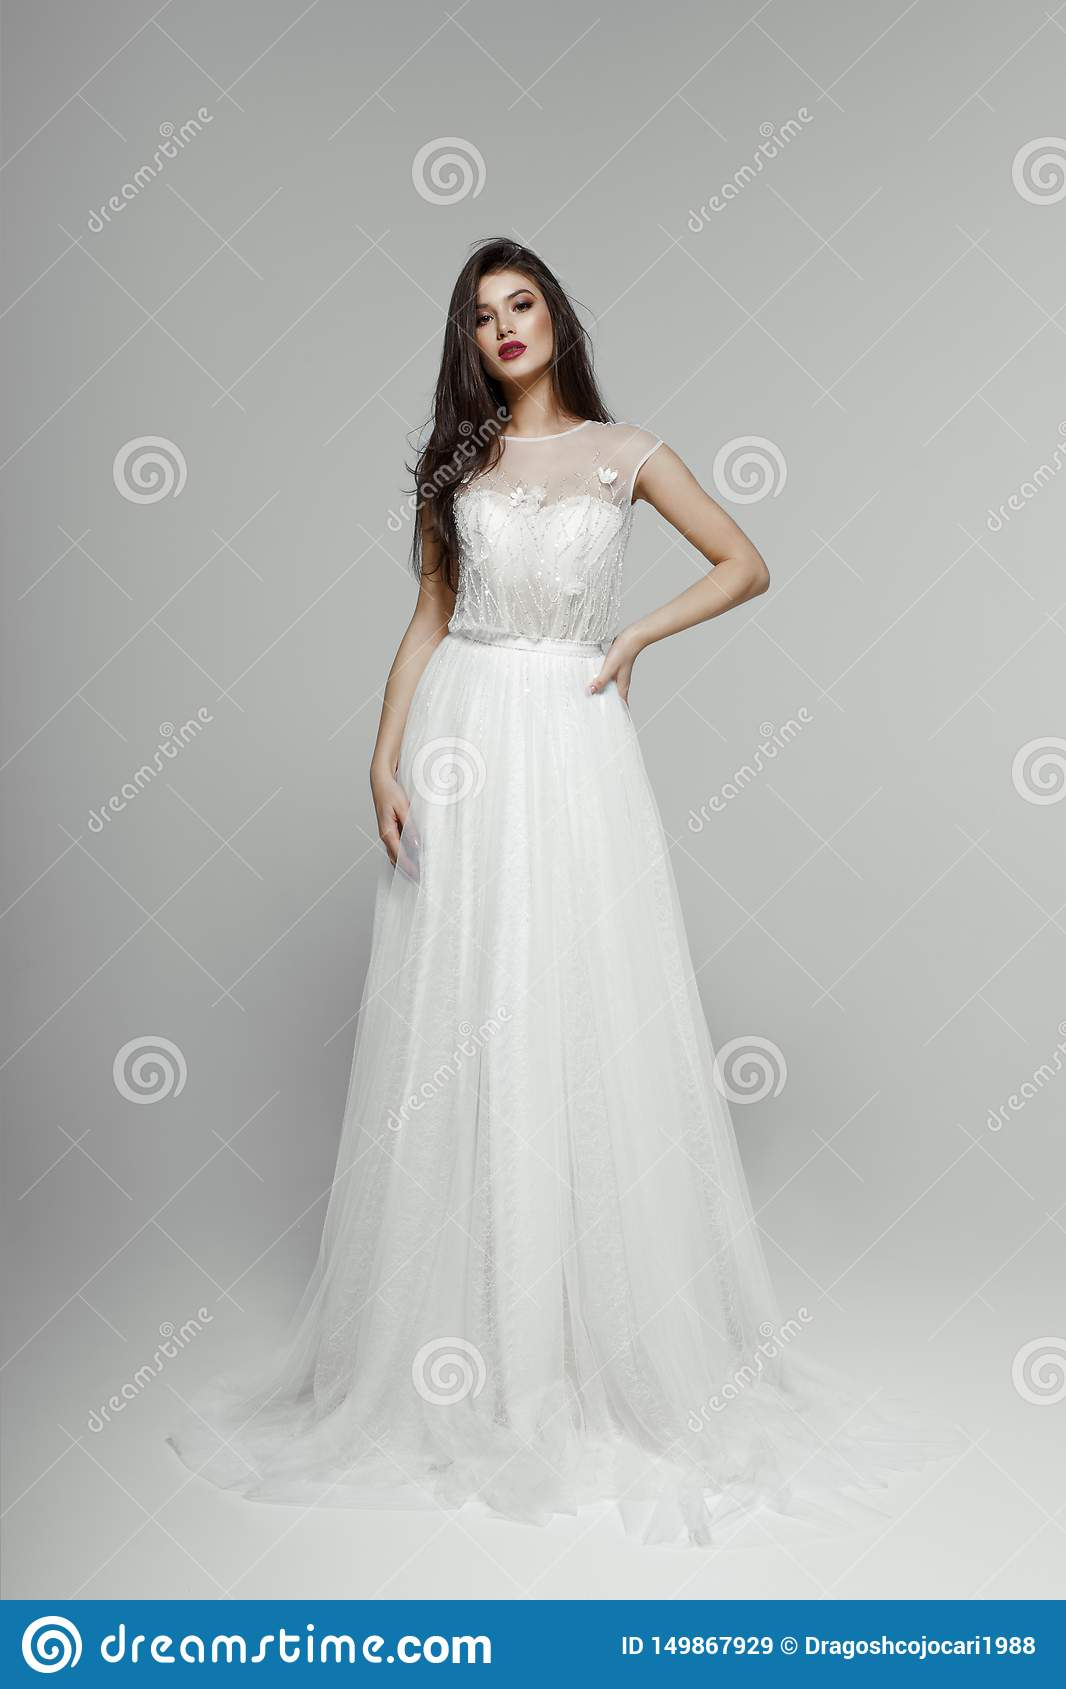 Fashion model in wedding dress. Young Sensual Bride In White dress. Looking at camera, isolated on a white background.